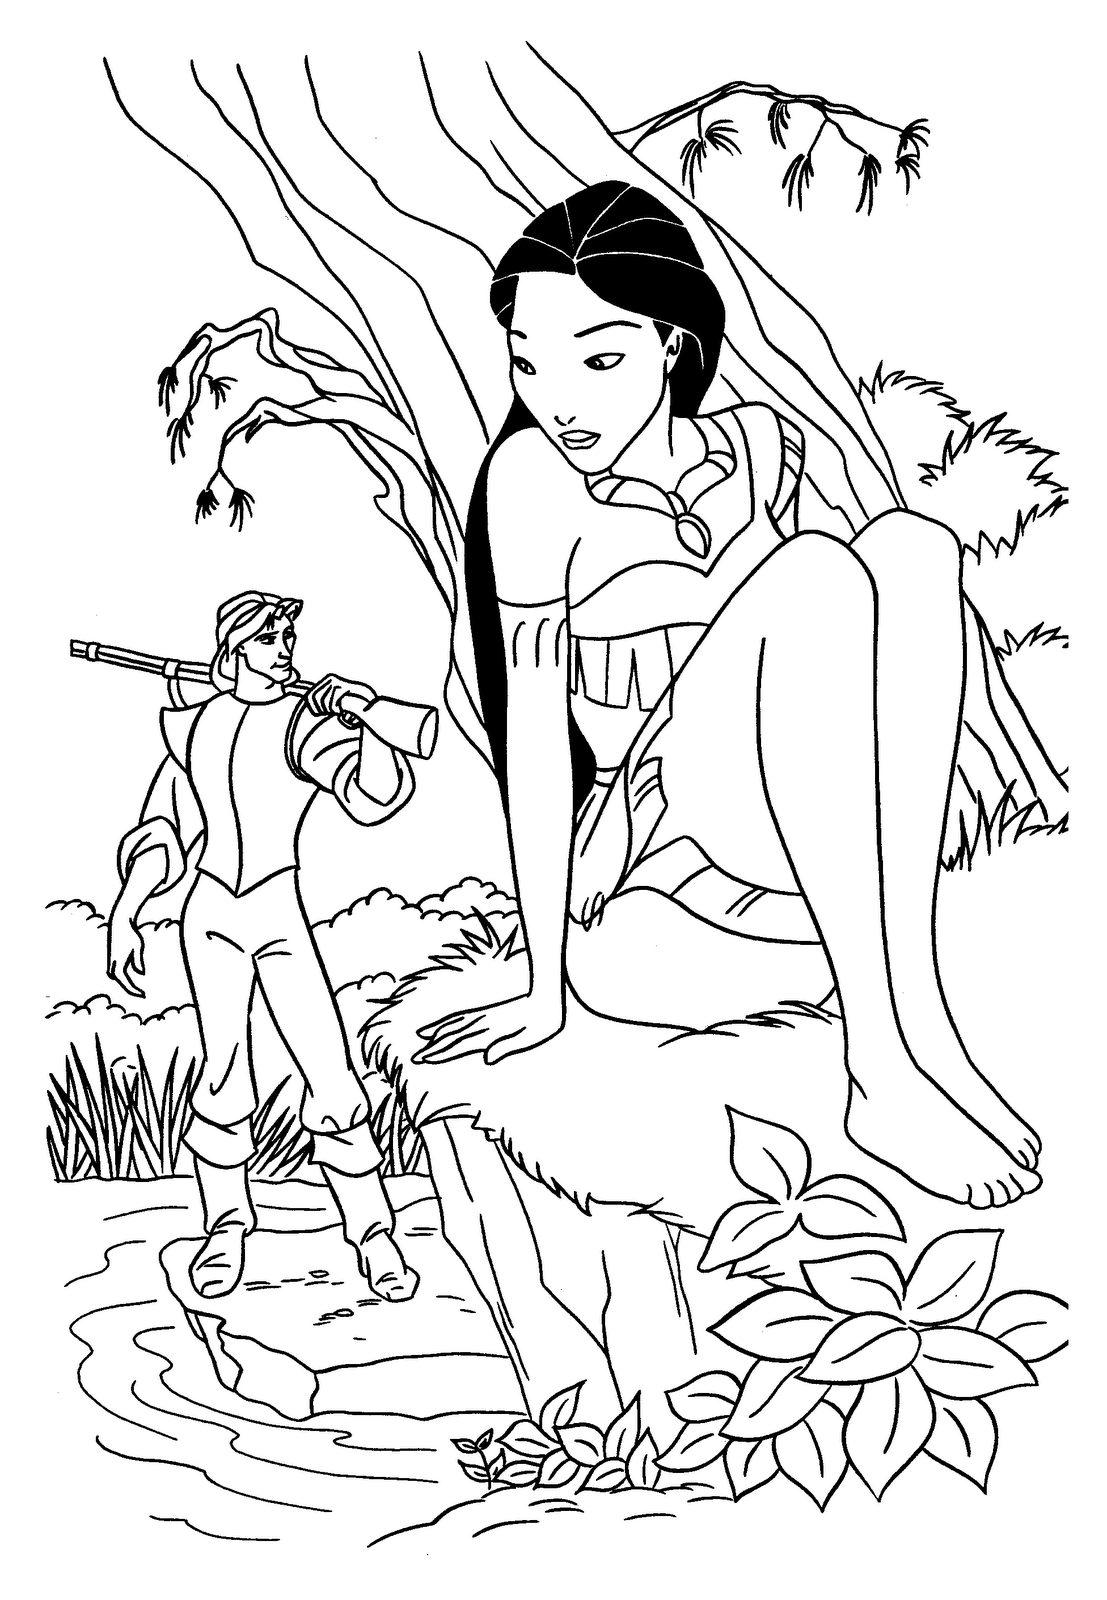 Coloring pages for kids disney princess pocahontas - Disney coloring kids ...